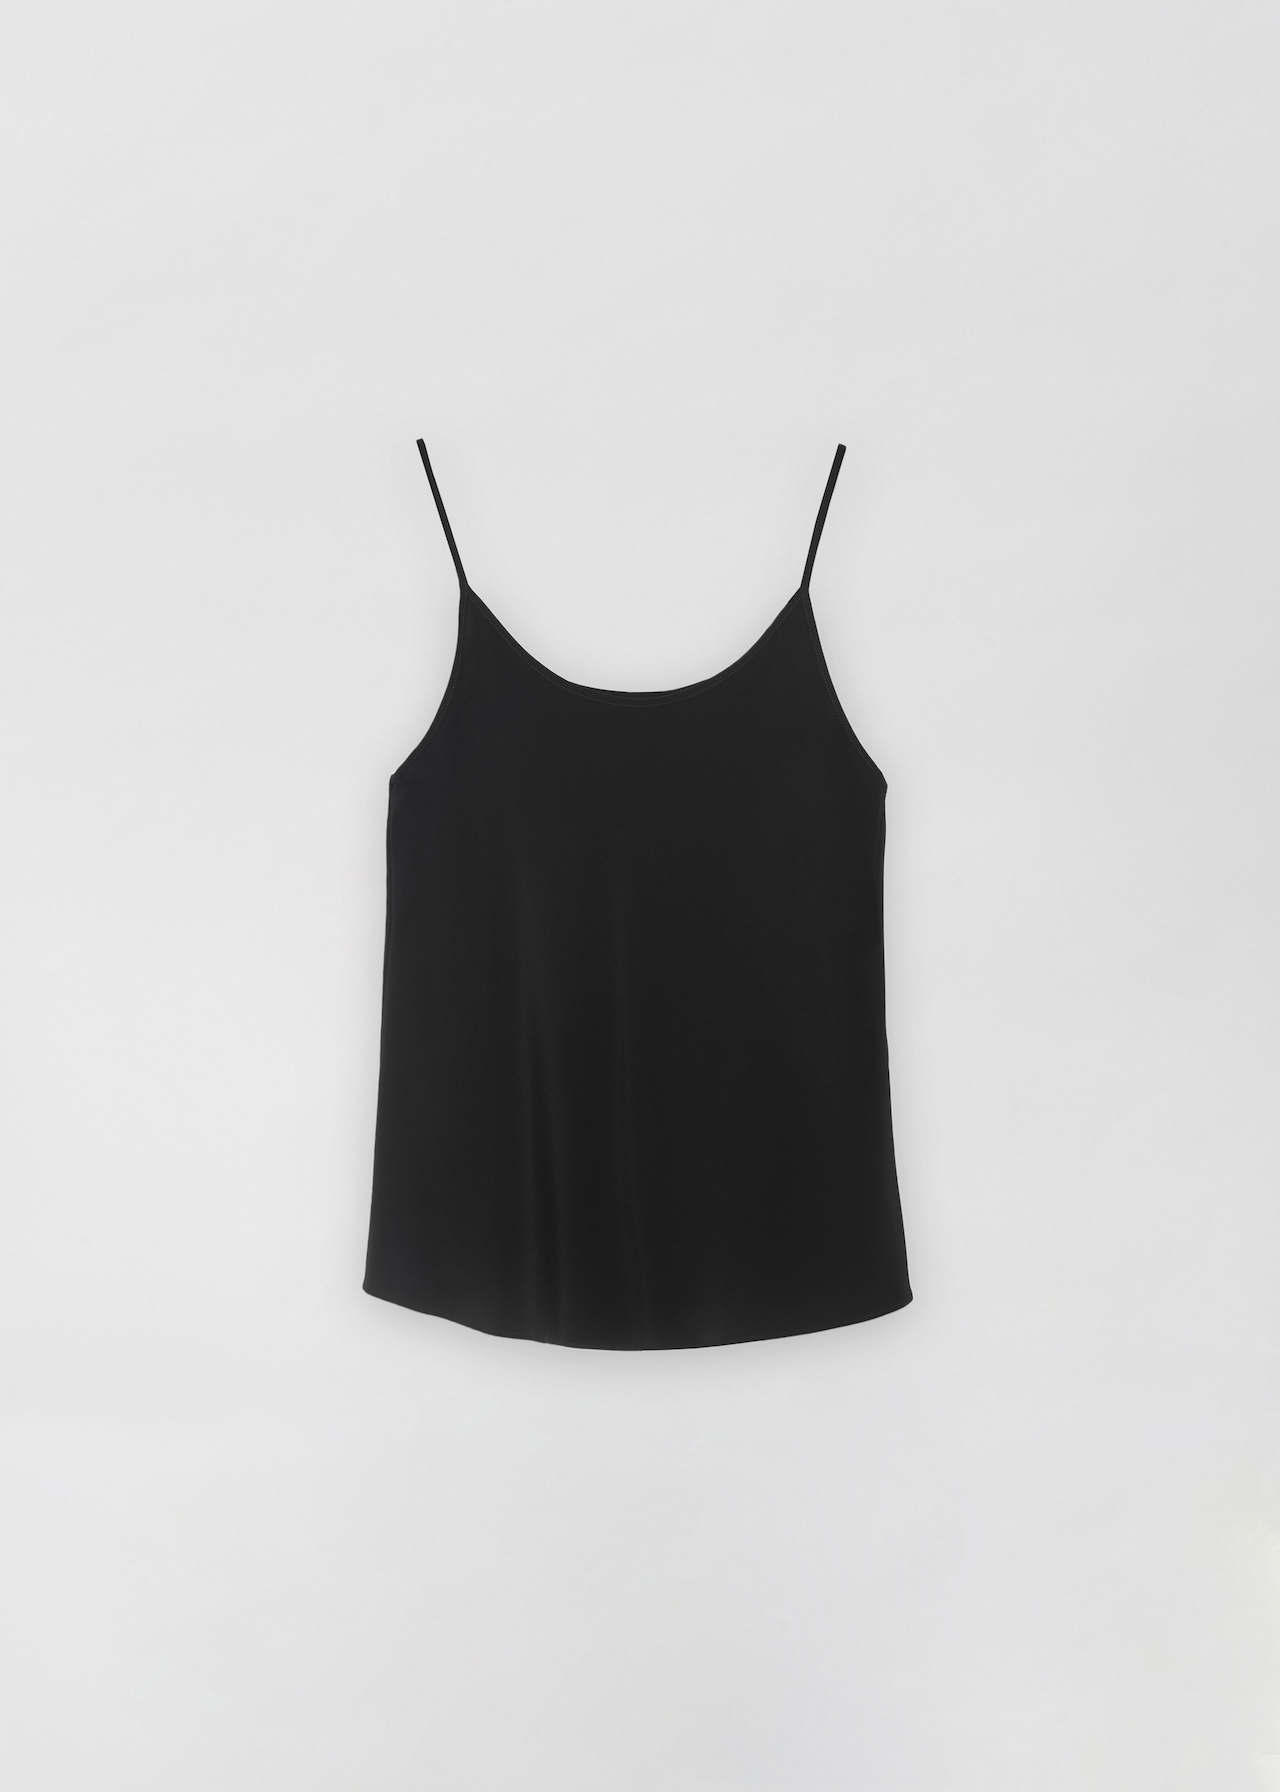 Camisole - Black - Co Collections